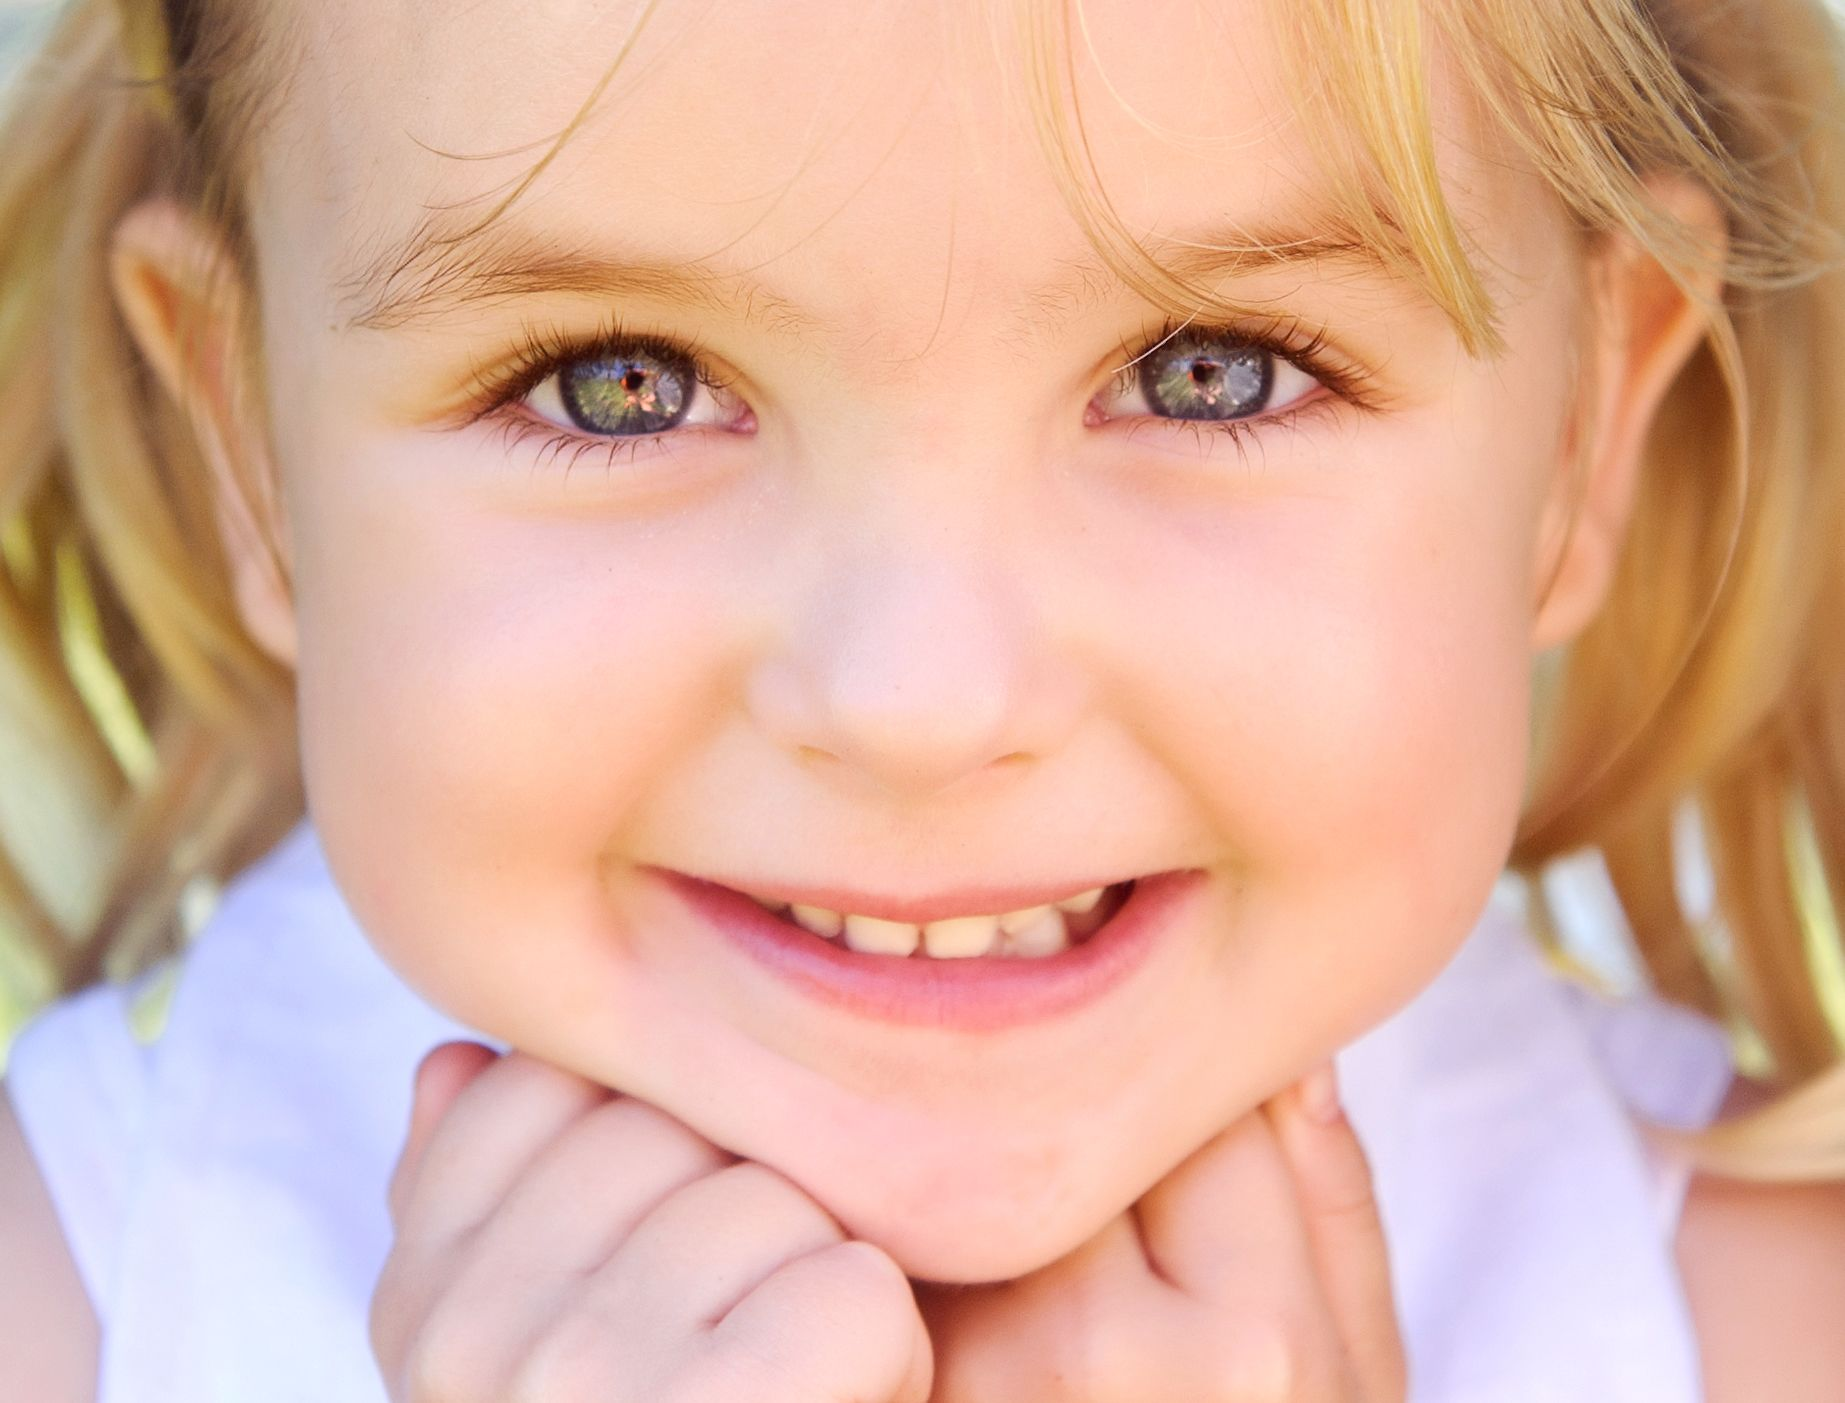 portrait of a little girl with her hands on chin smiling at camera